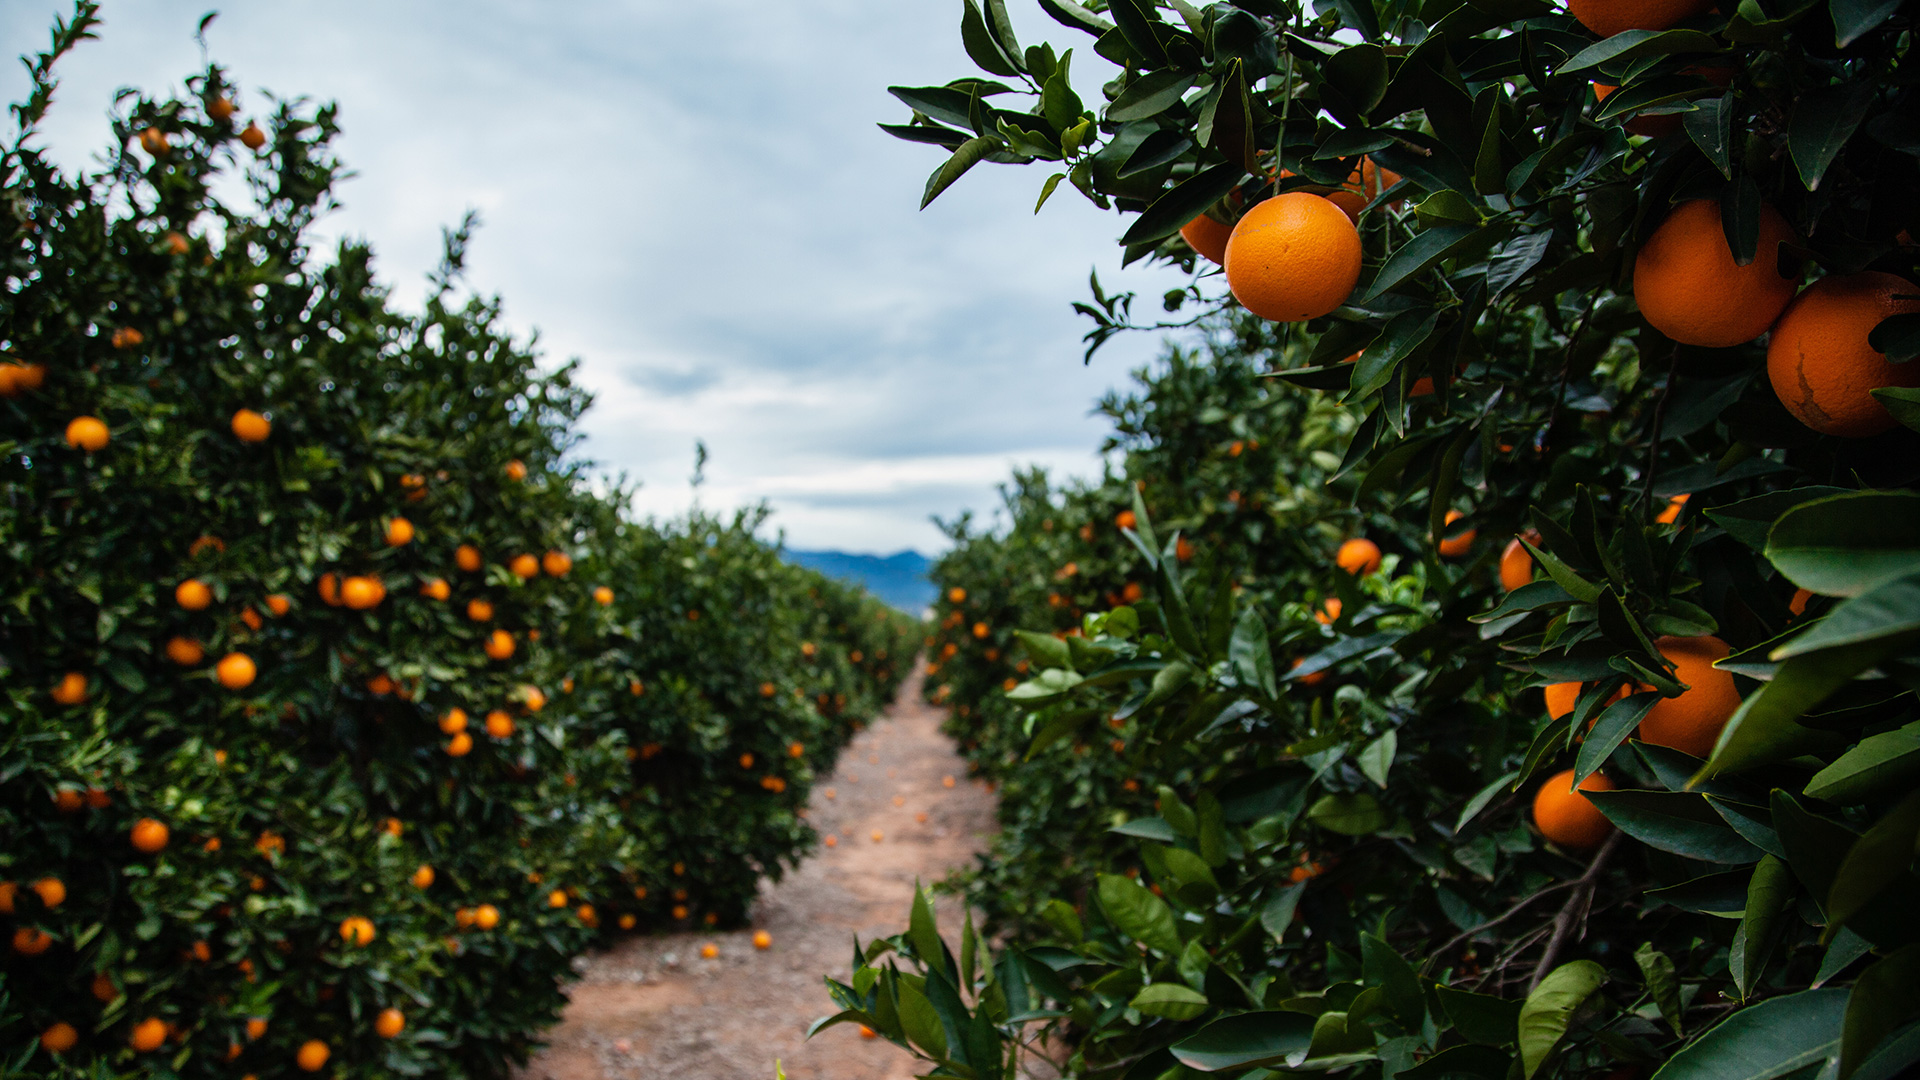 oranges in the field